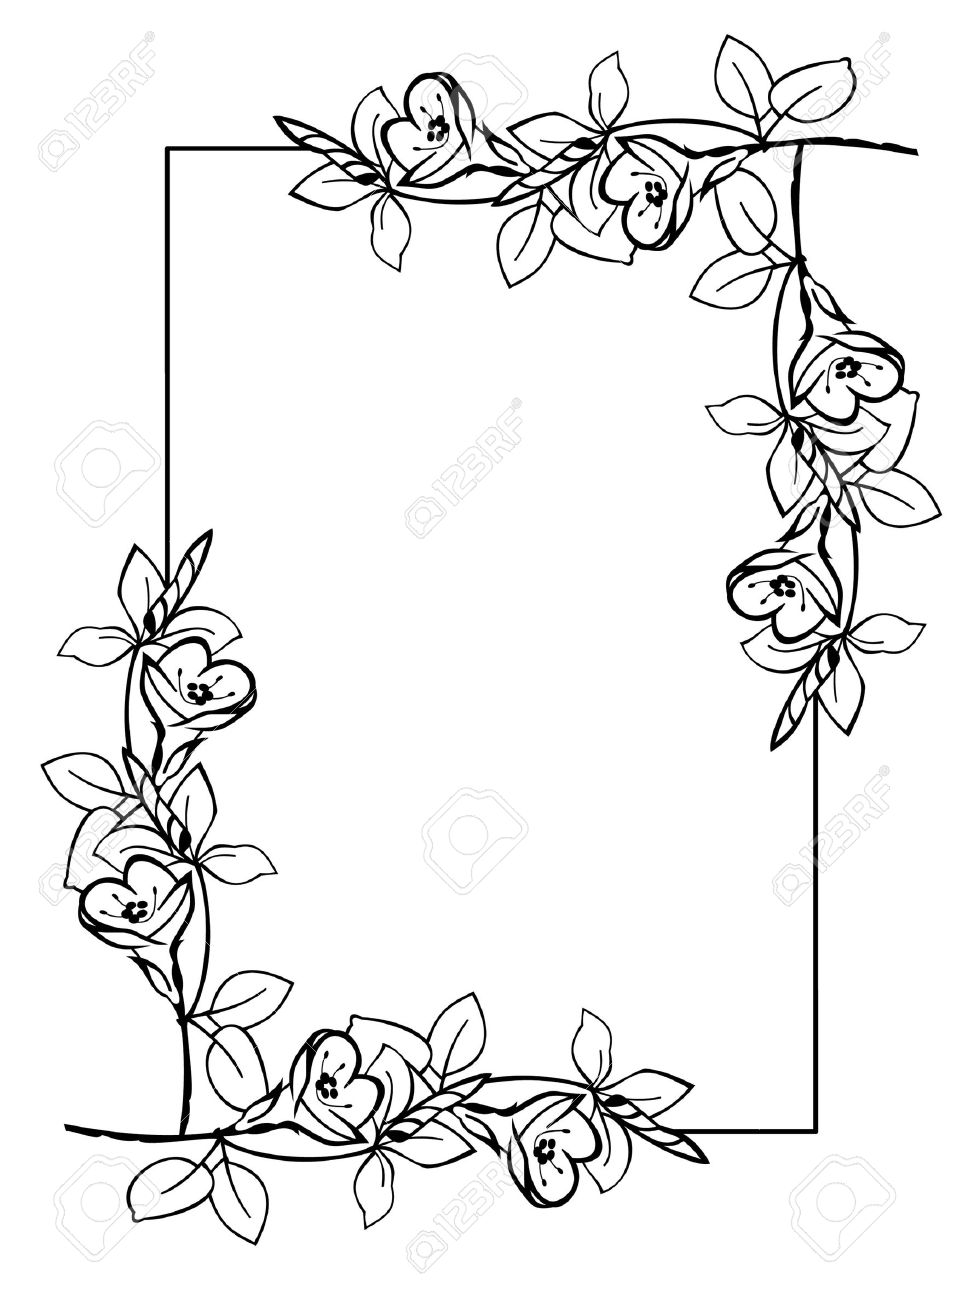 Flower Frame Line Drawing : Flower frame drawing at getdrawings free for